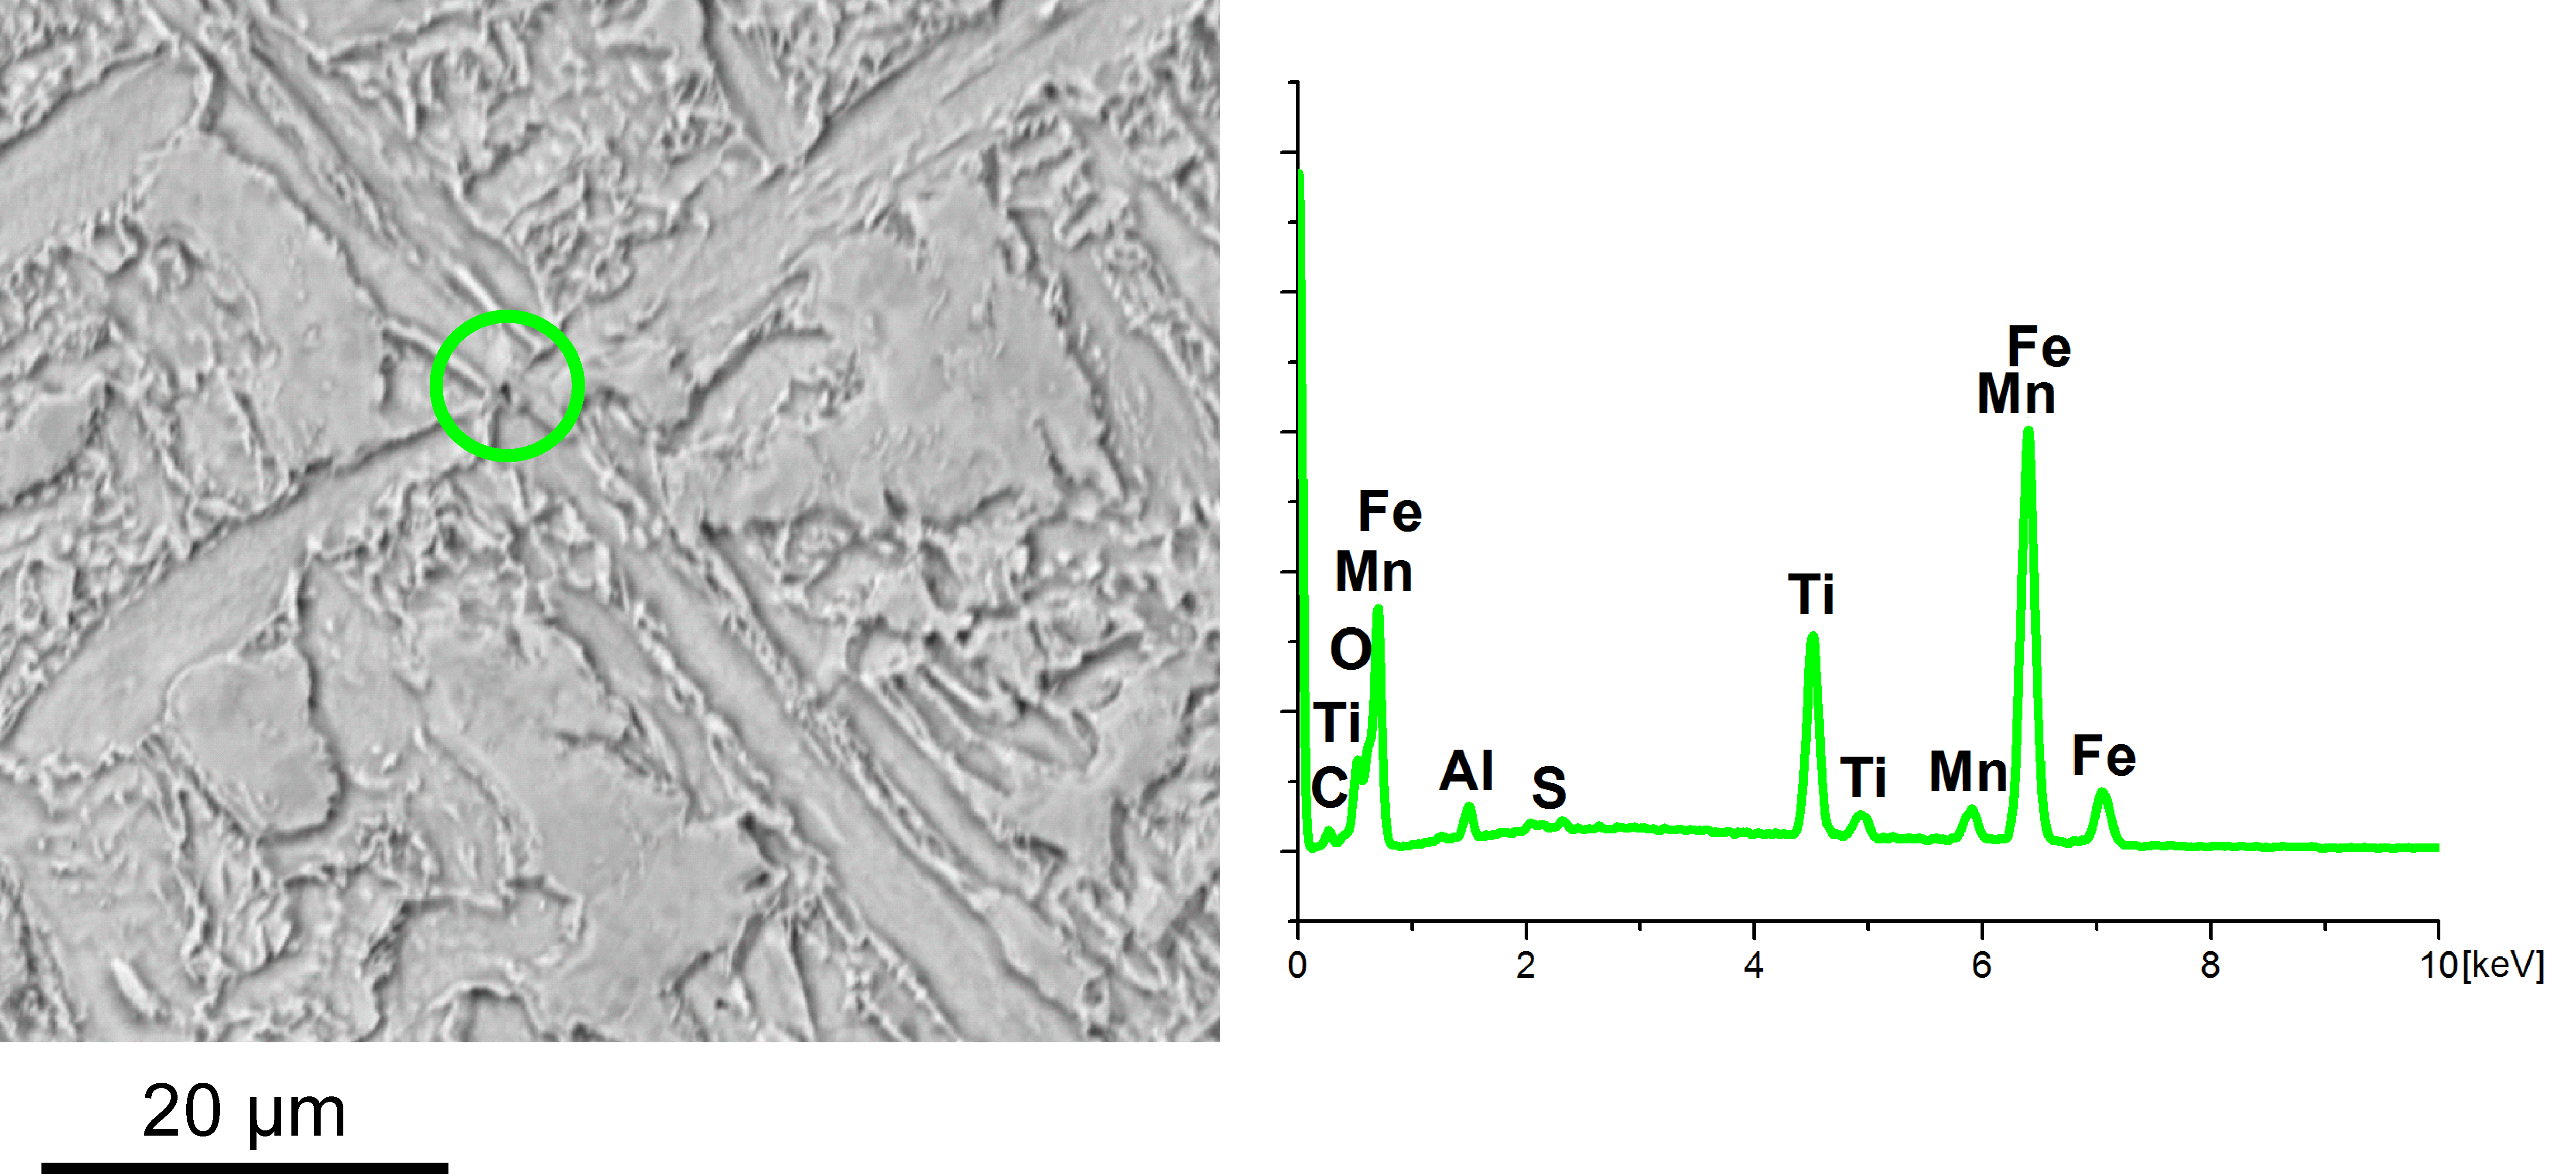 Especially multiphase inclusions, containing titanium and manganese are found to be active for acicular ferrite